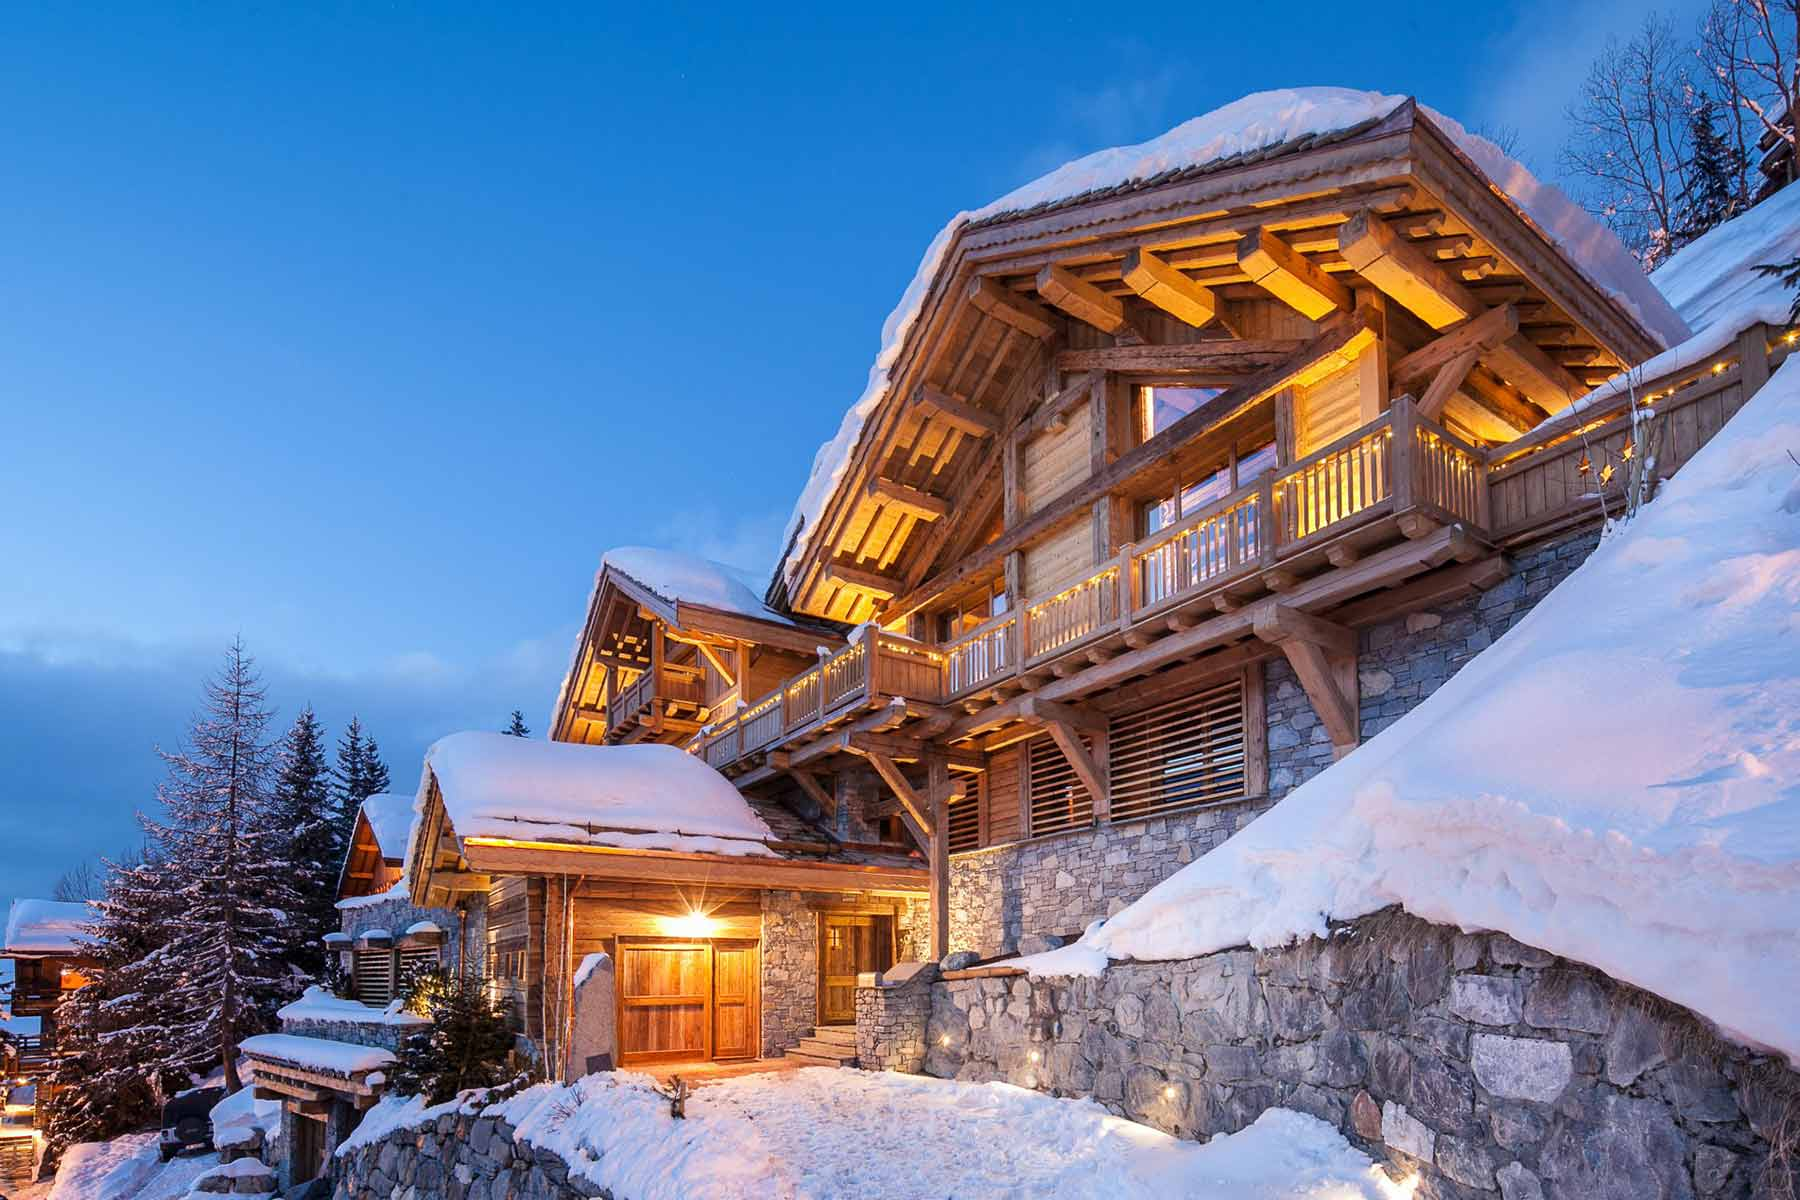 Méribel - France - Chalet, 9 rooms, 6 bedrooms - Slideshow Picture 1